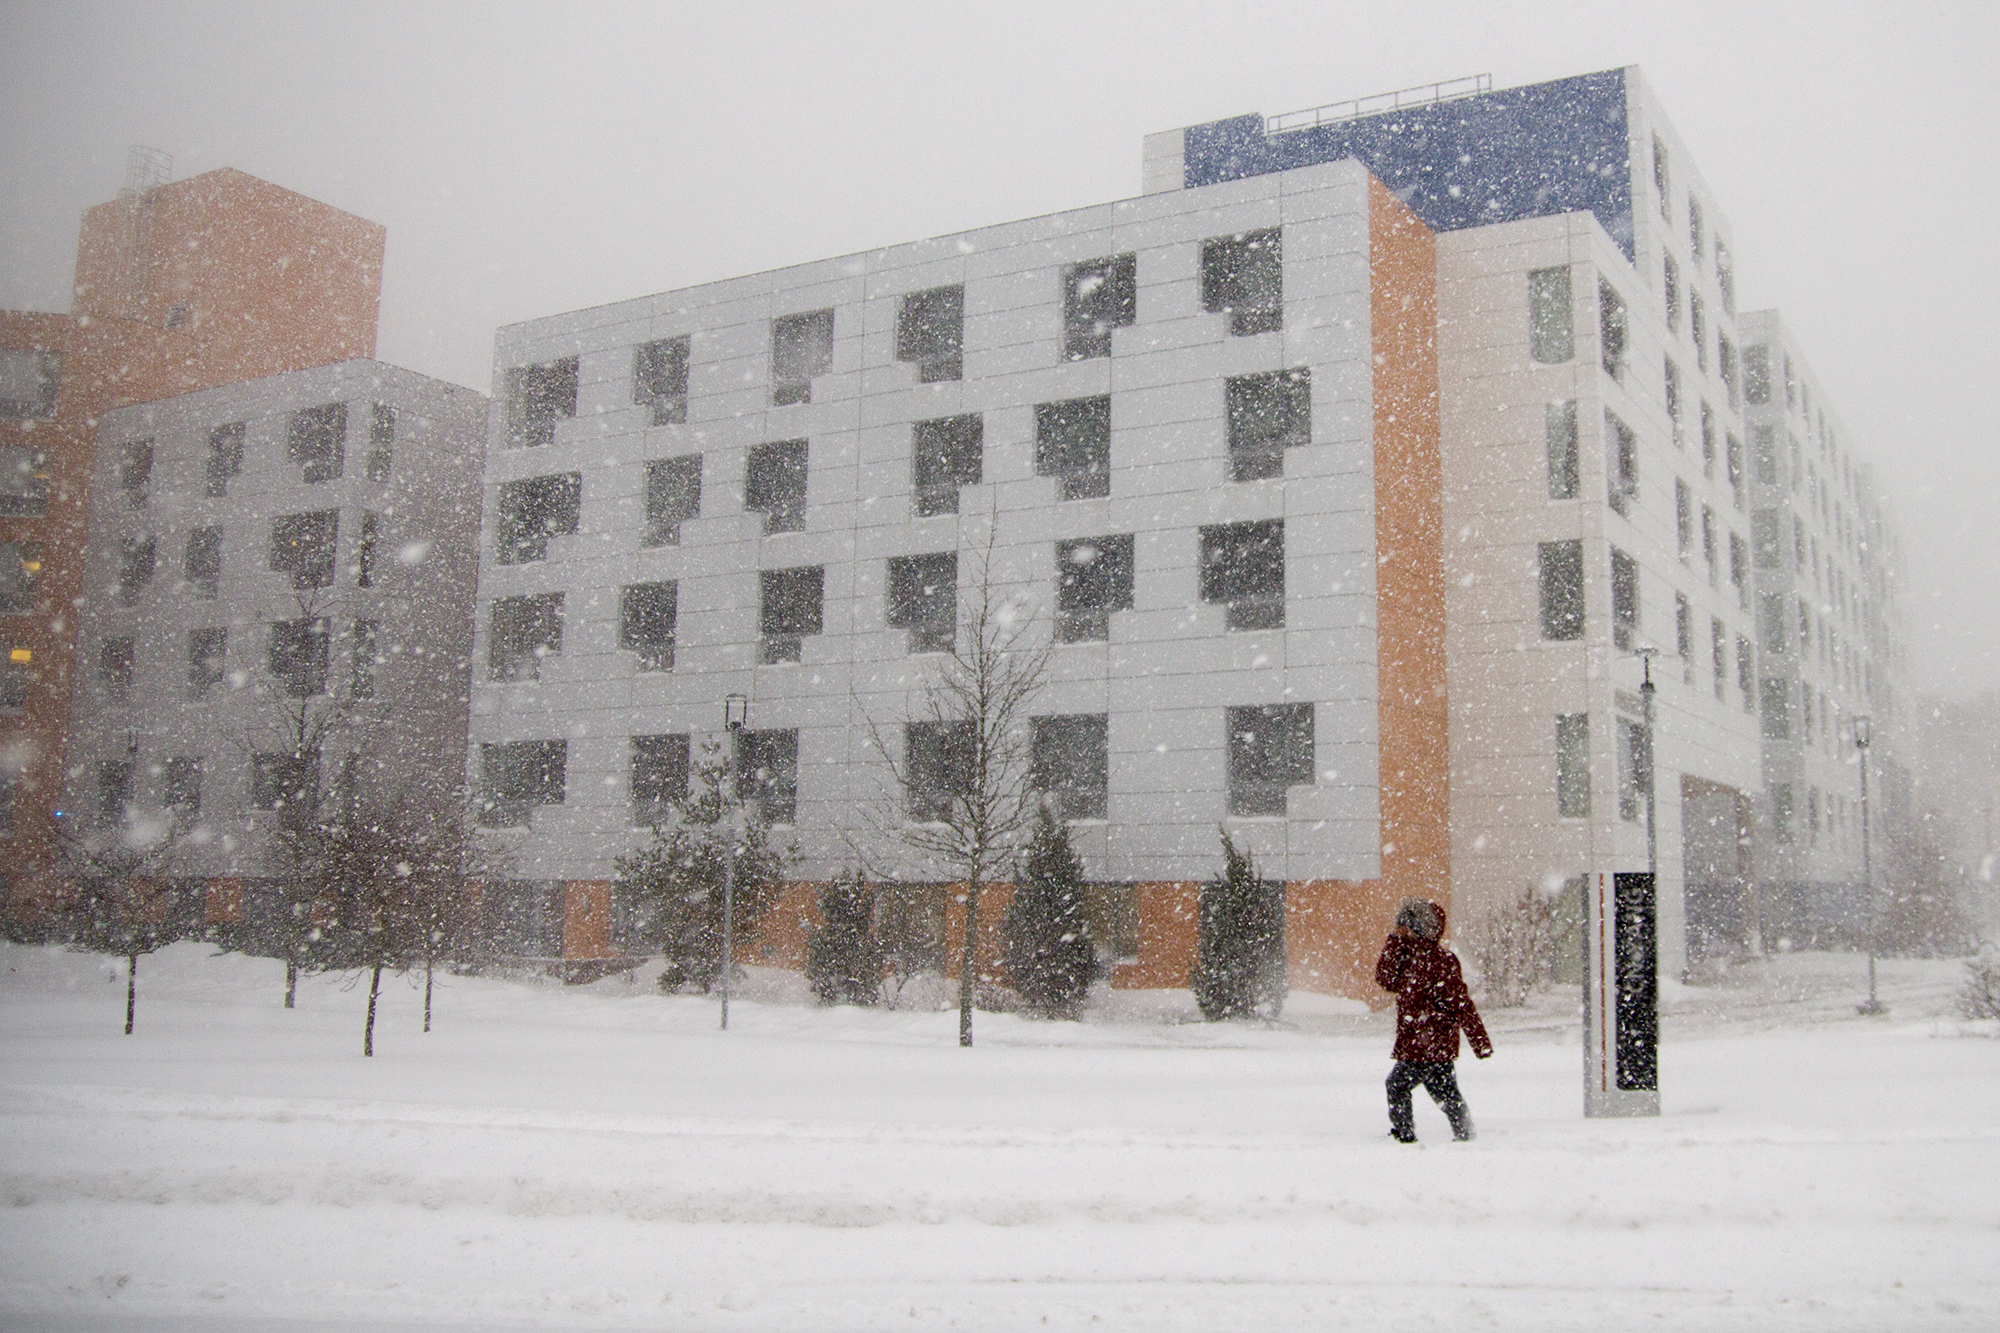 A person treks through the snow in front of Yang College. ERIC SCHMID/THE STATESMAN